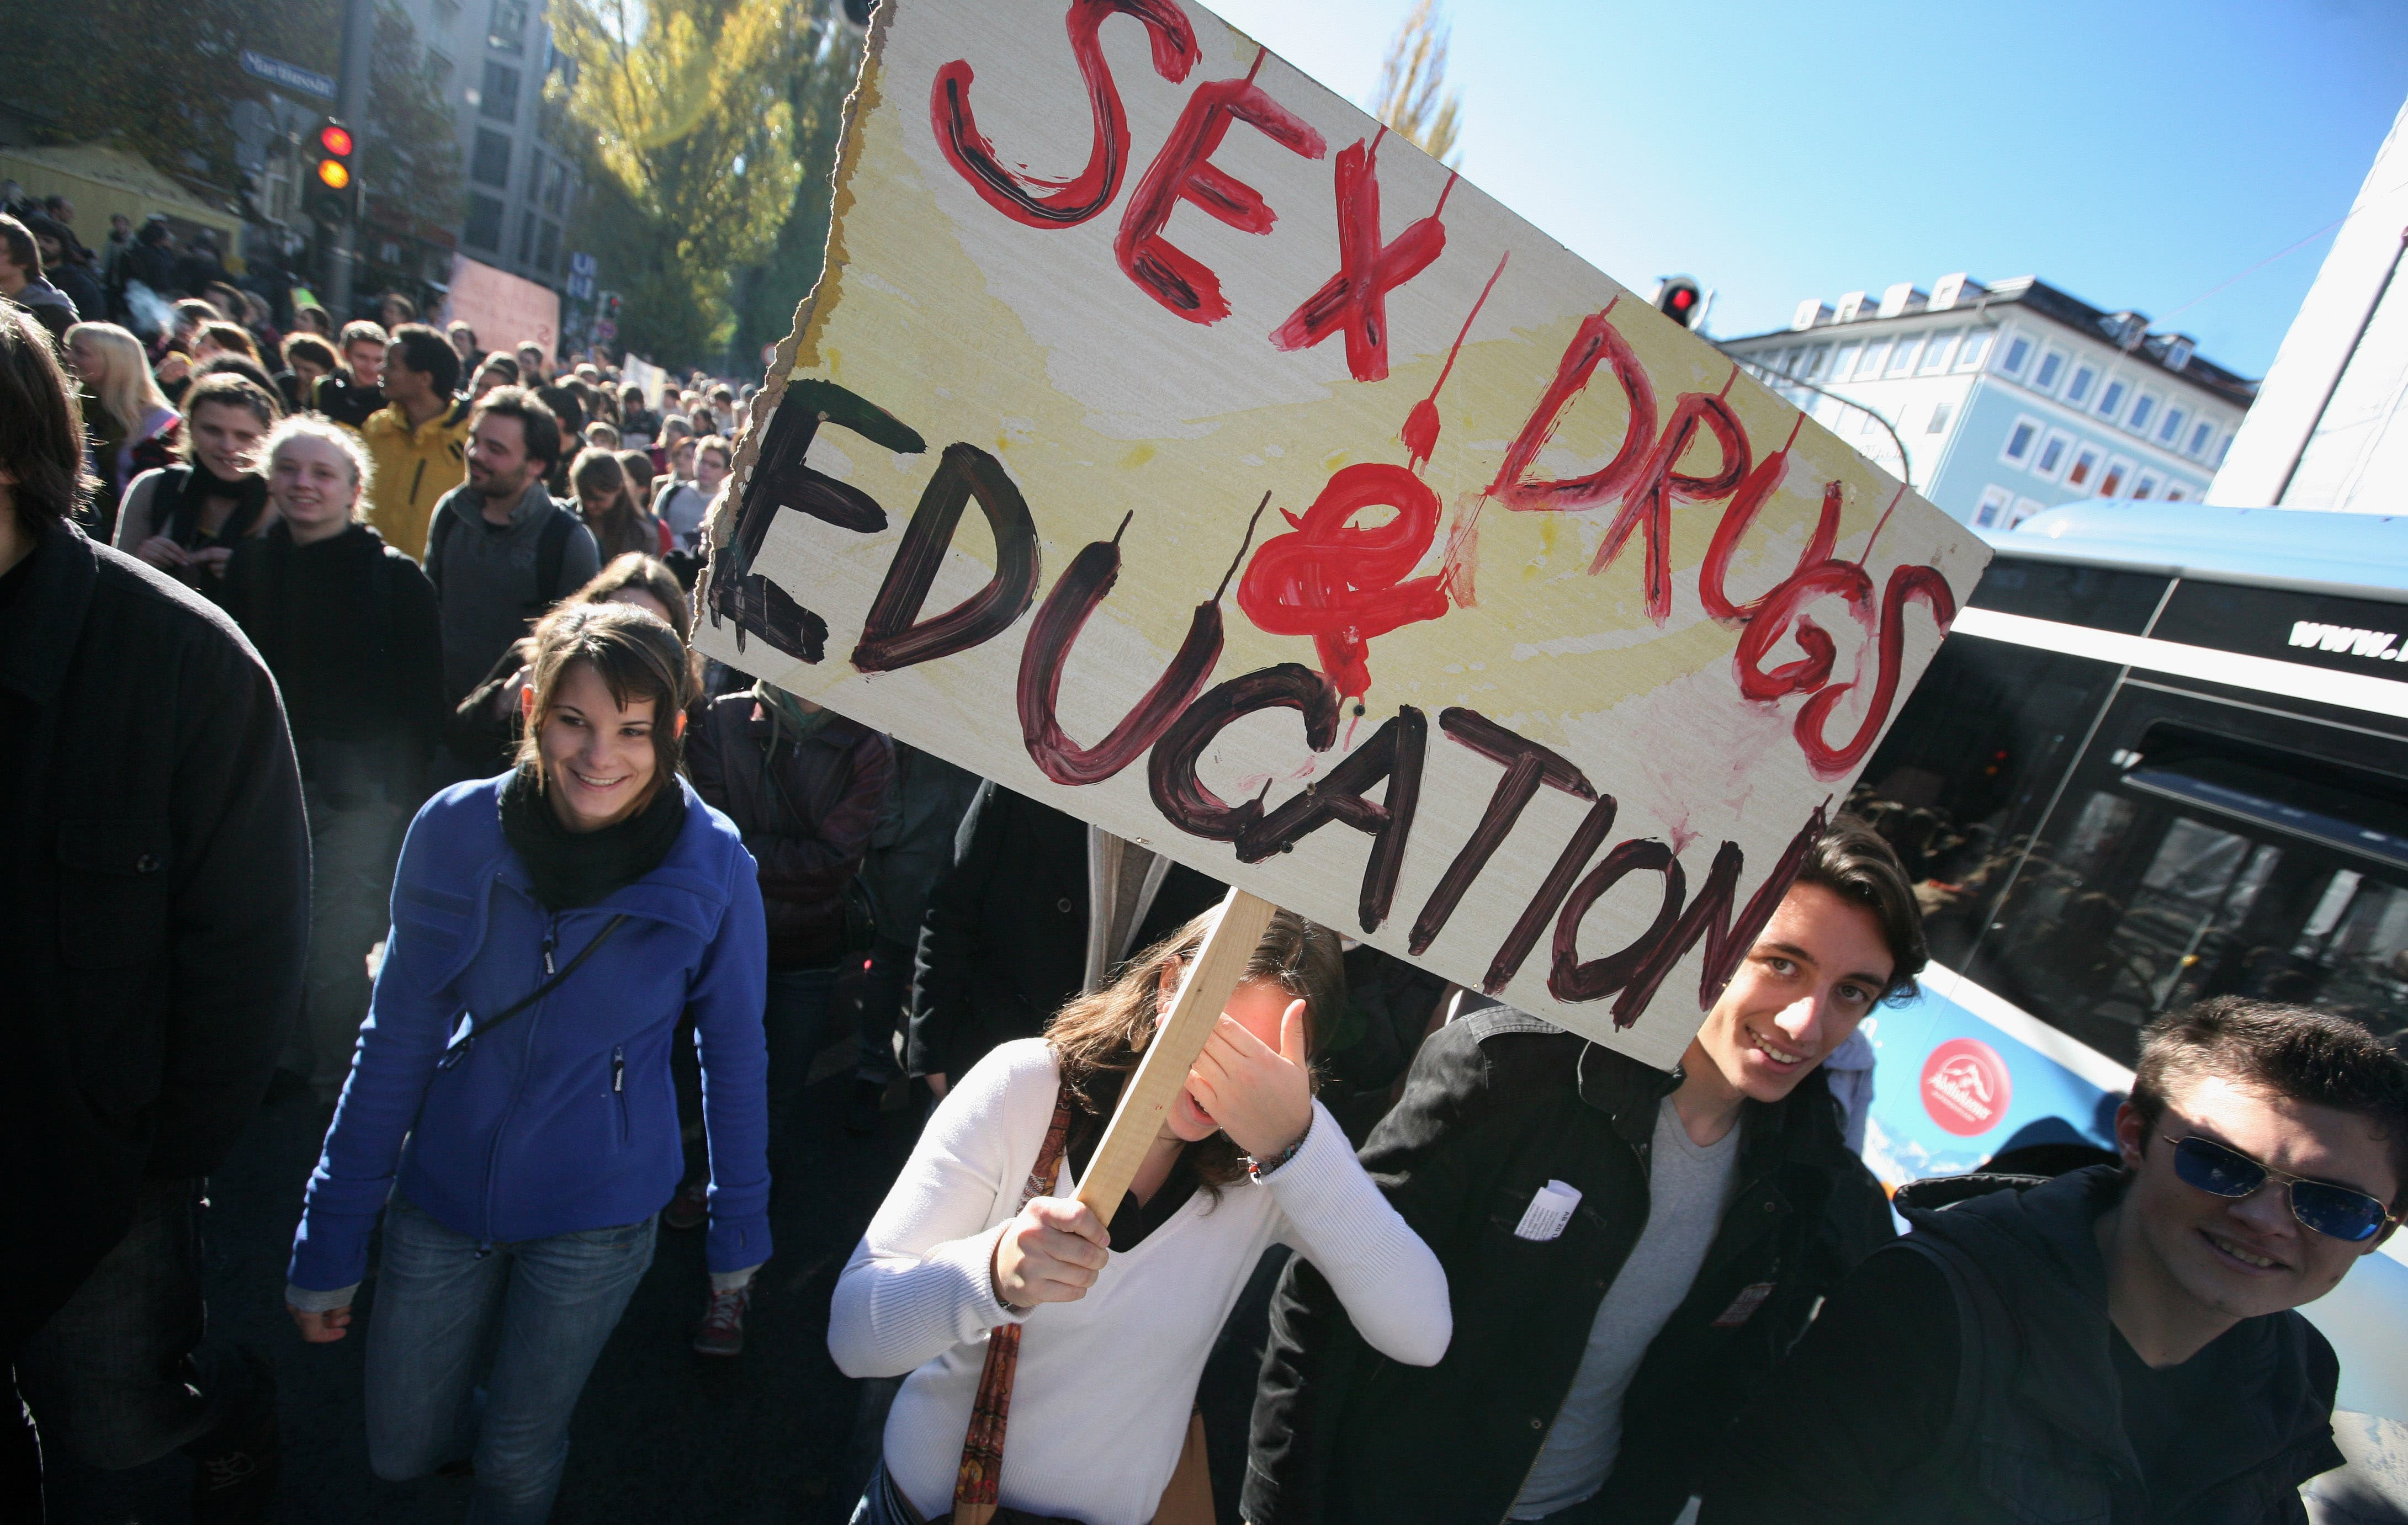 Al Bawaba reports that there is sill a lack of Sex education programs in the Middle East.